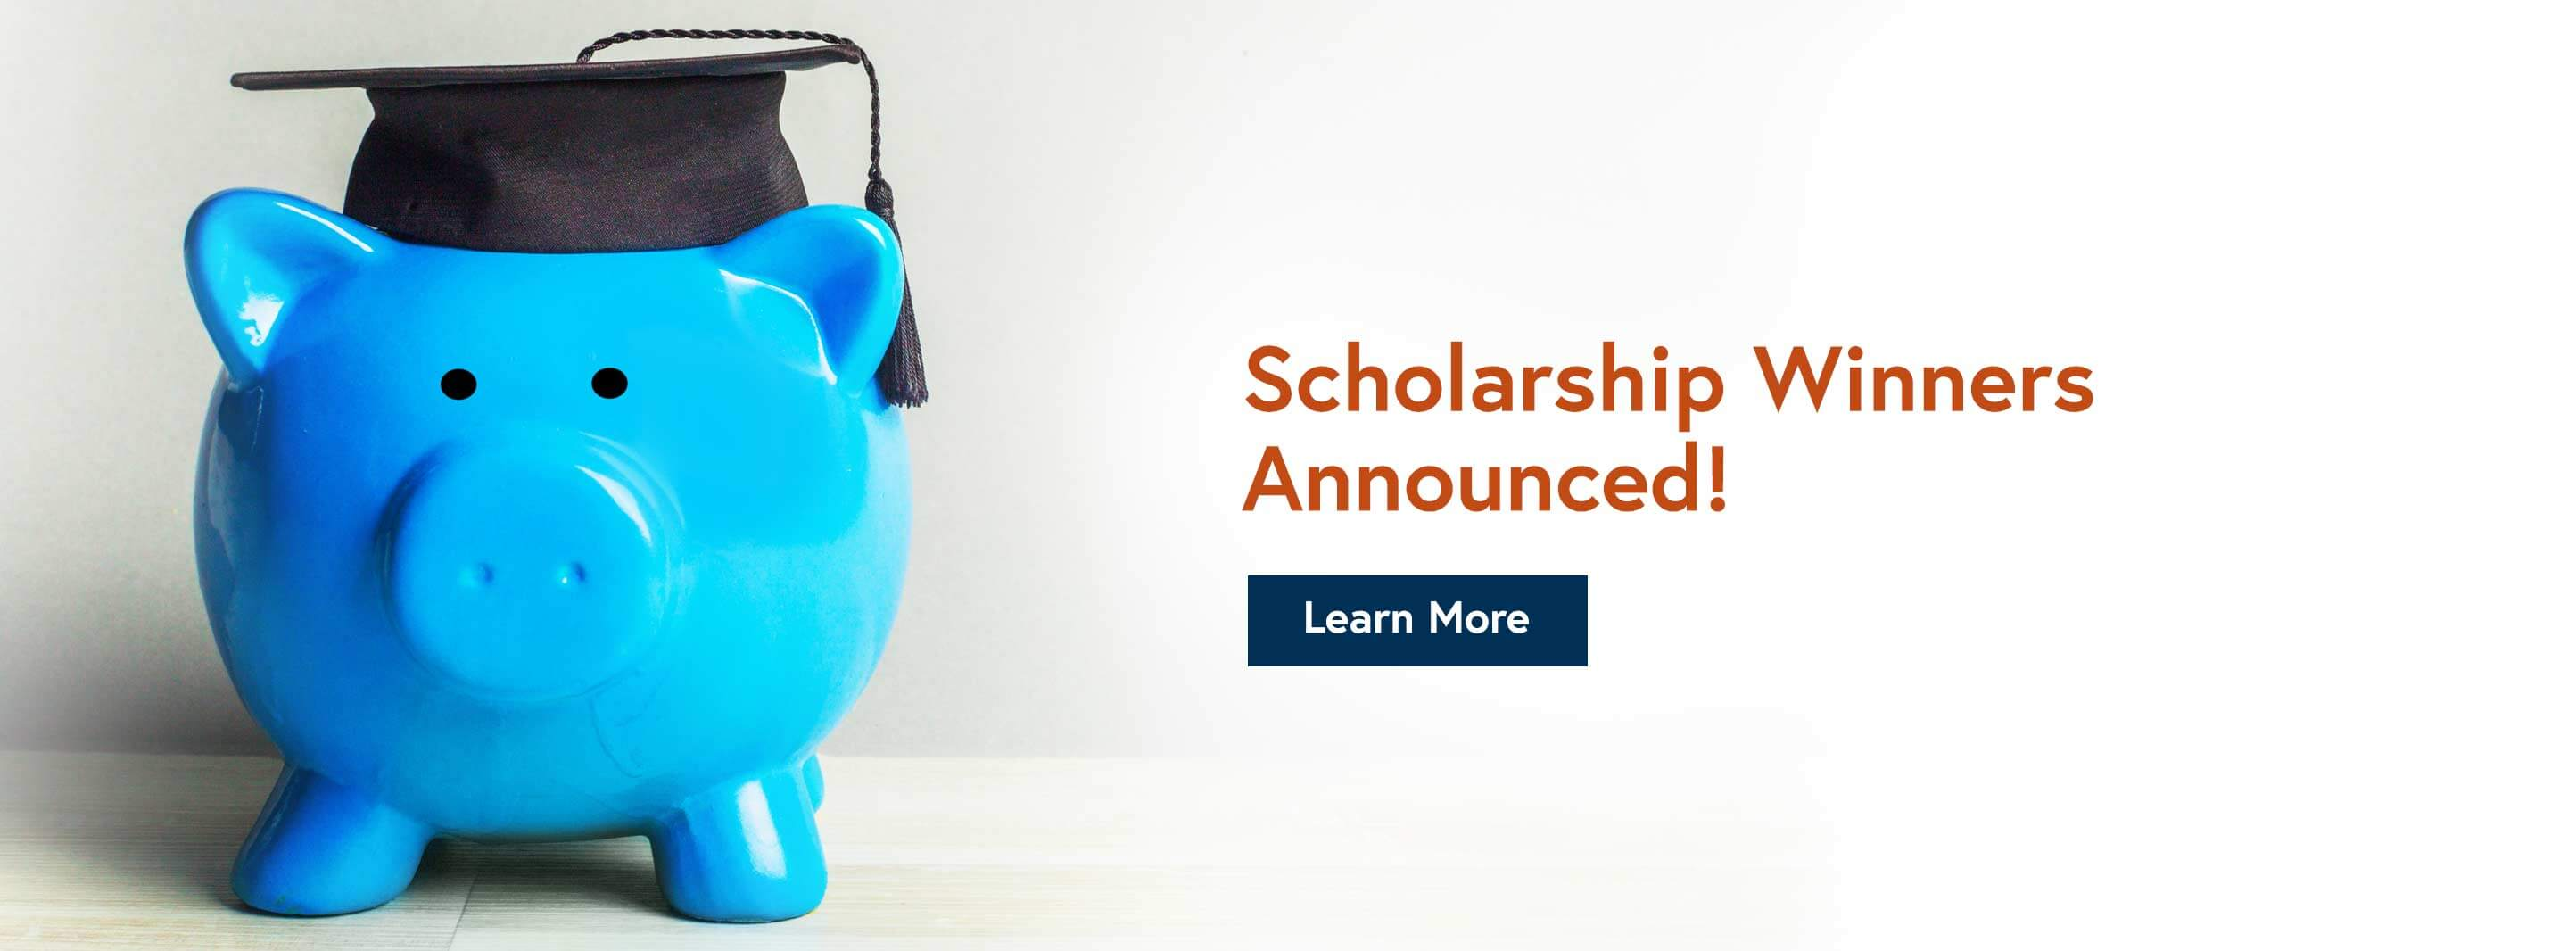 Scholarship Winners Announced! Learn More.